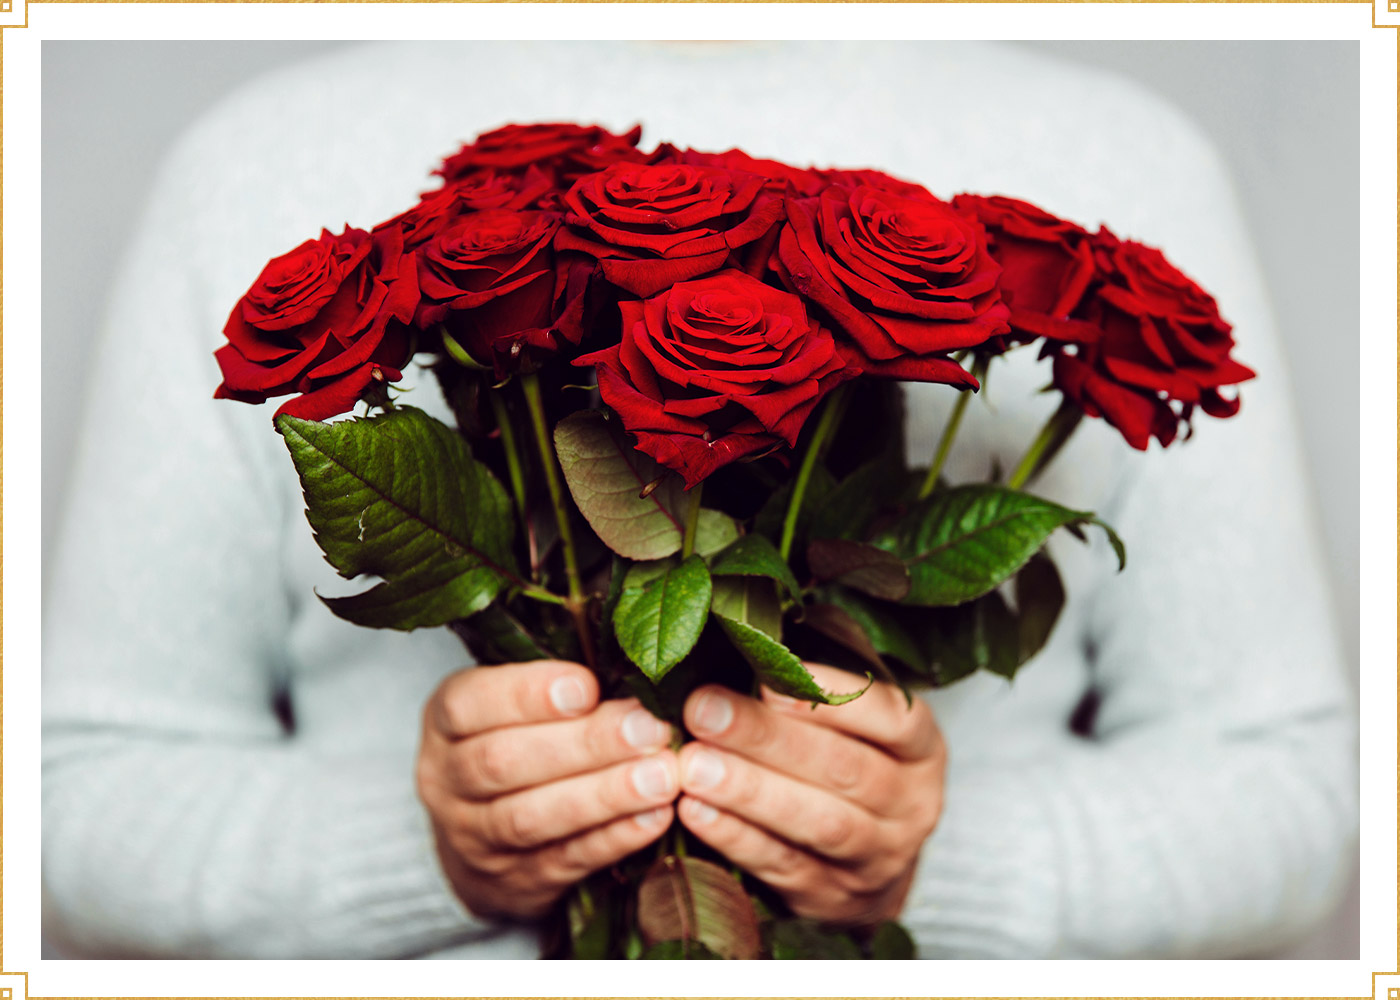 photo of man holding red roses